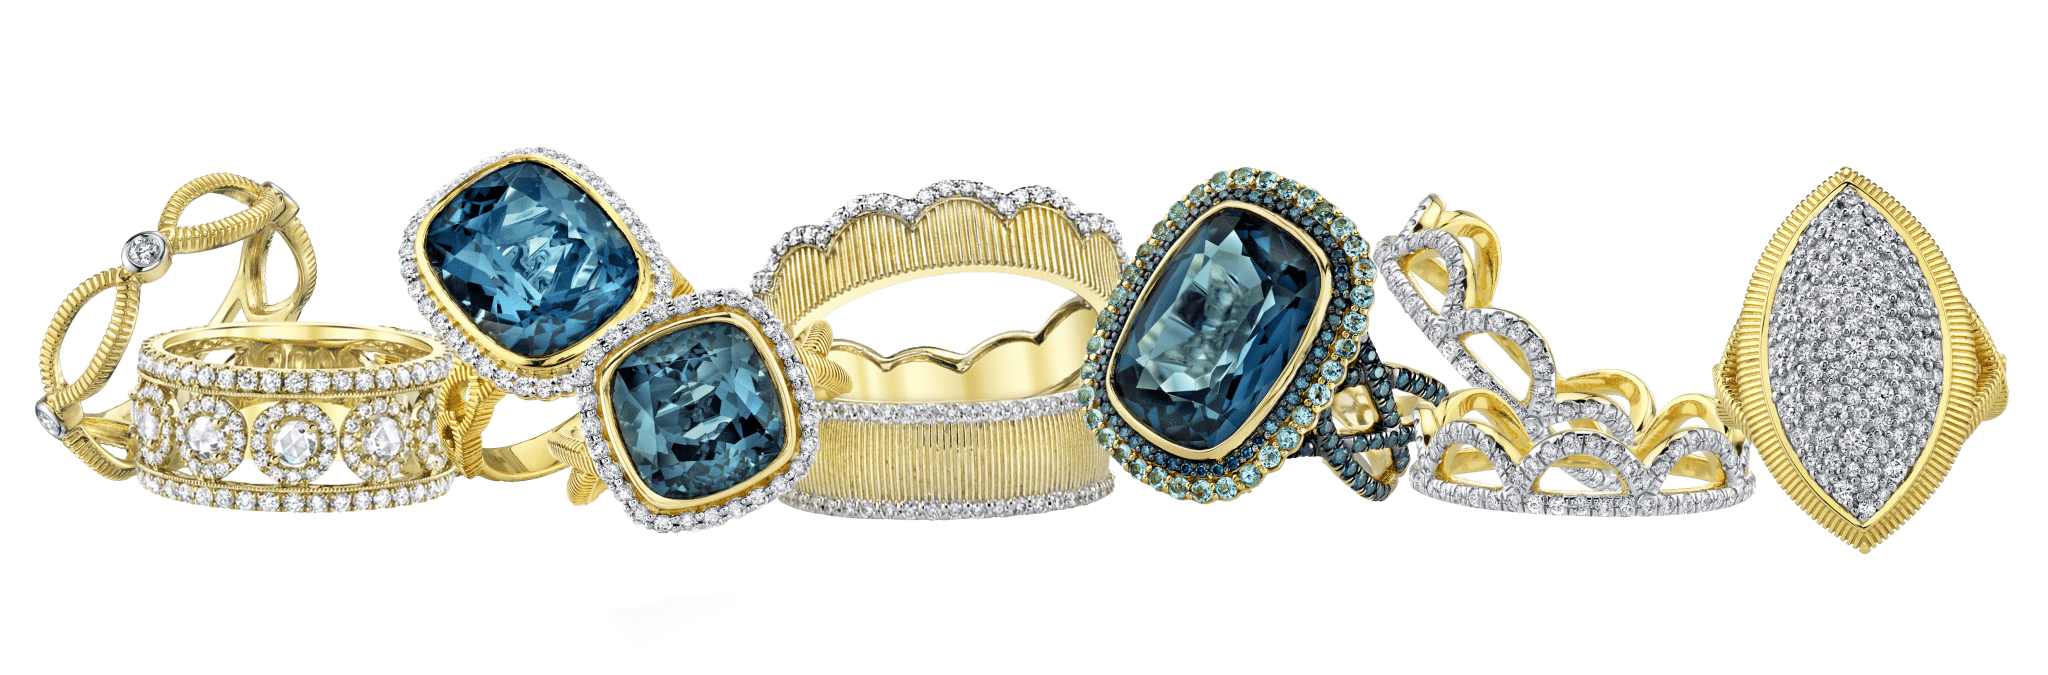 London blue and classic rings-transparent bkgd copy